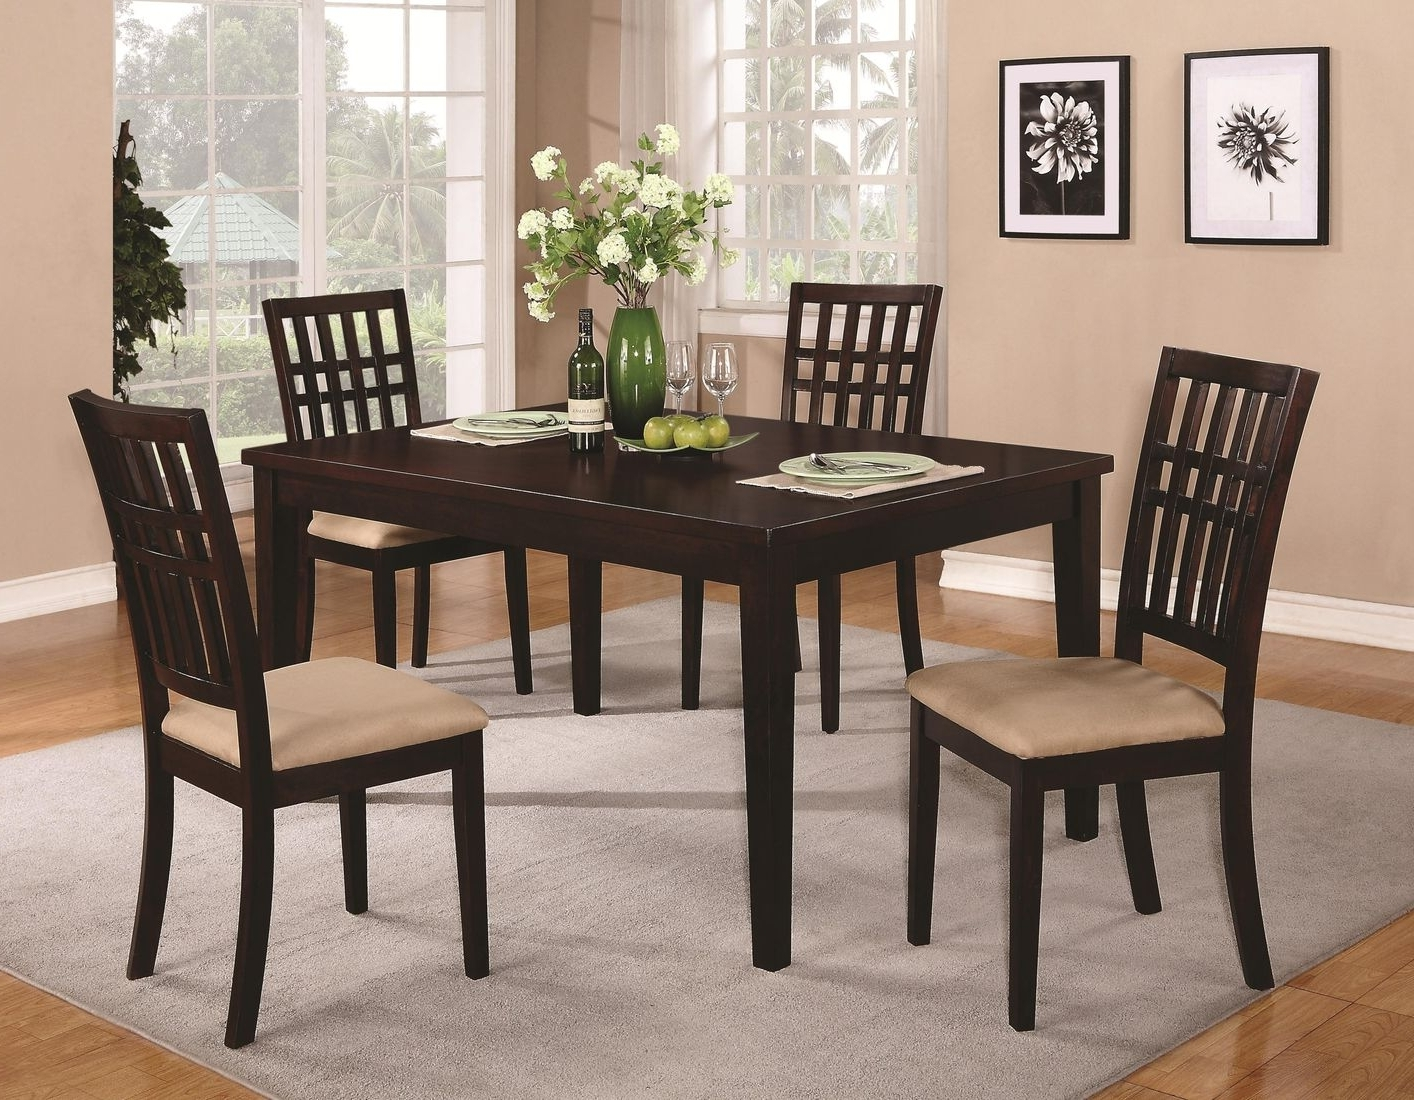 Brandt Dark Cherry Wood Dining Table – Steal A Sofa Furniture Outlet In Latest Dark Wood Dining Room Furniture (Gallery 1 of 25)